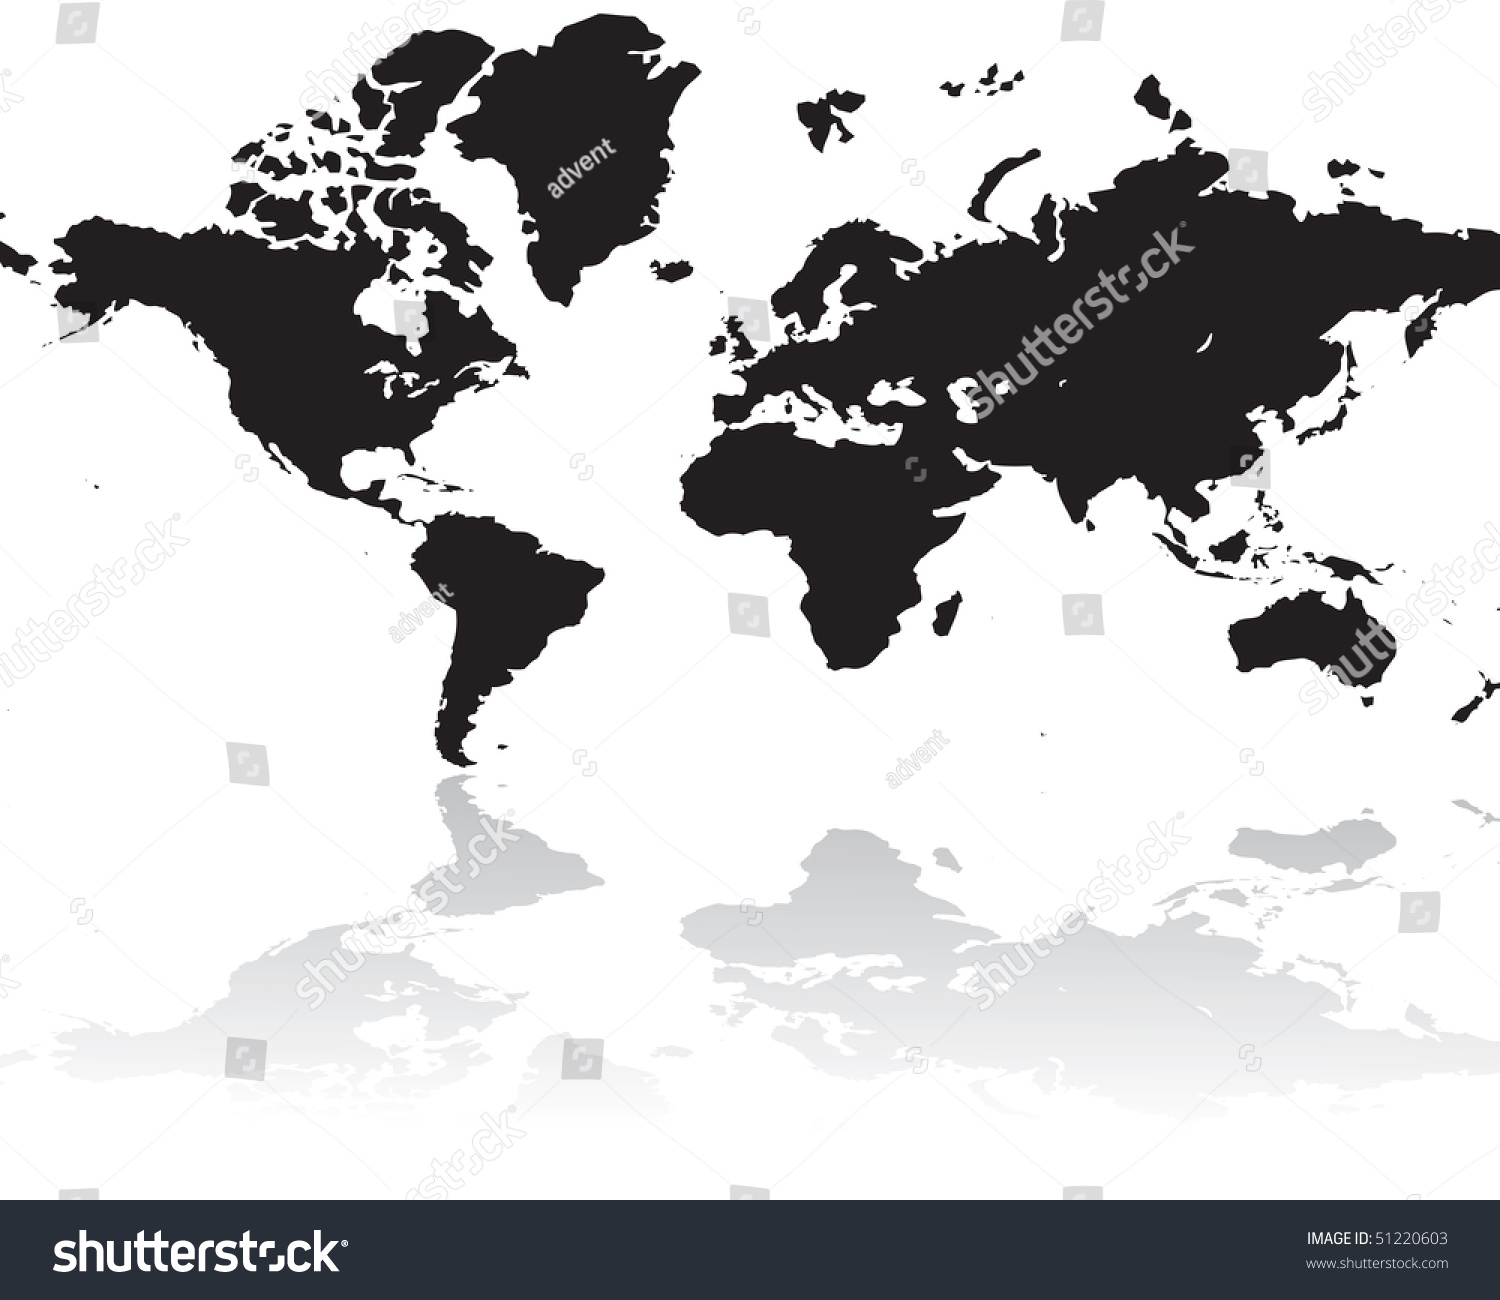 World Map Silhouette Isolated On White Stock Vector (Royalty Free ...